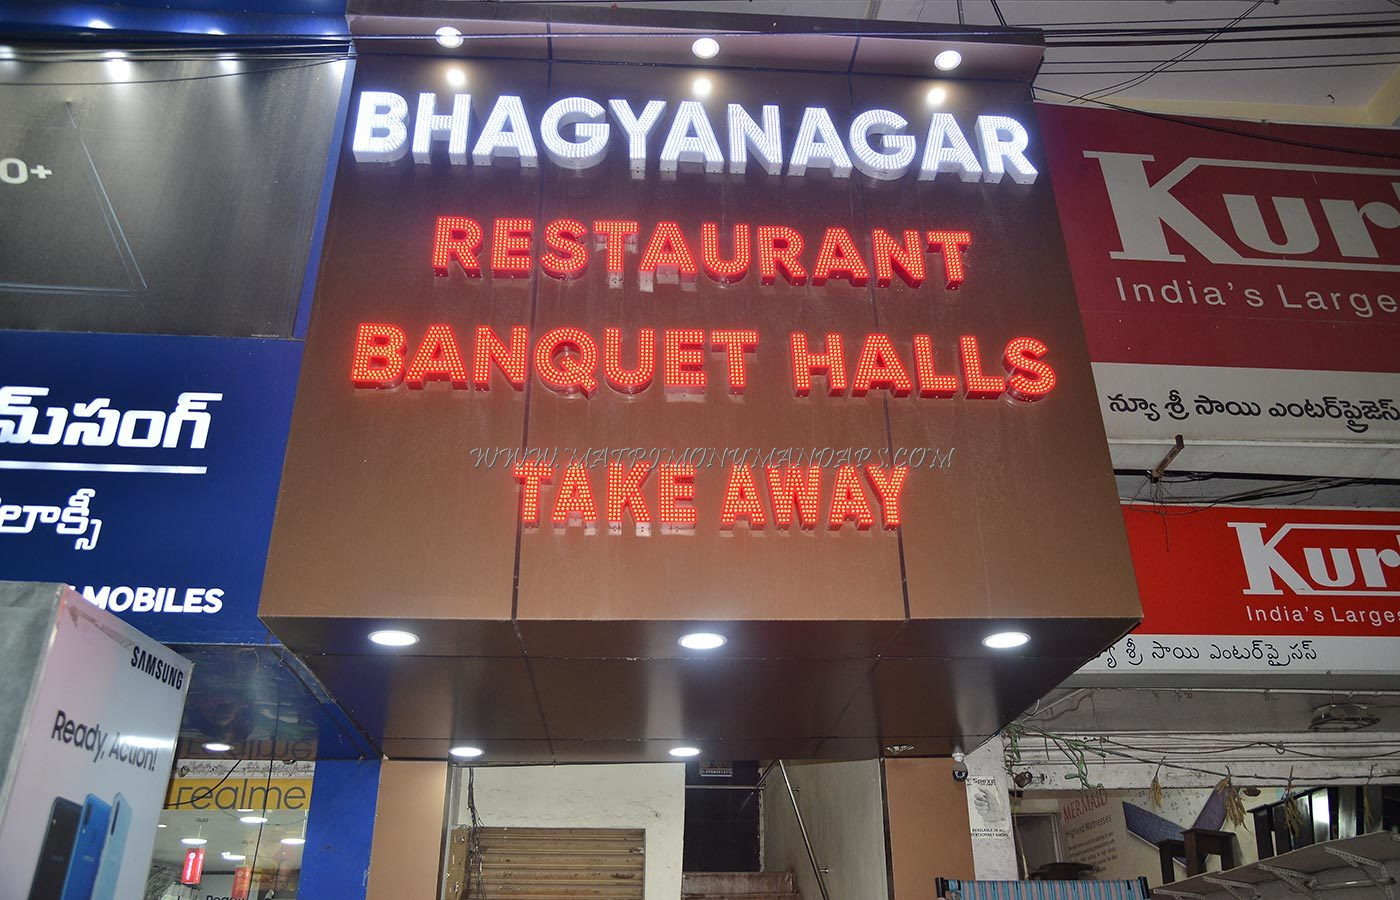 Find More Banquet Halls in Dilsukhnagar